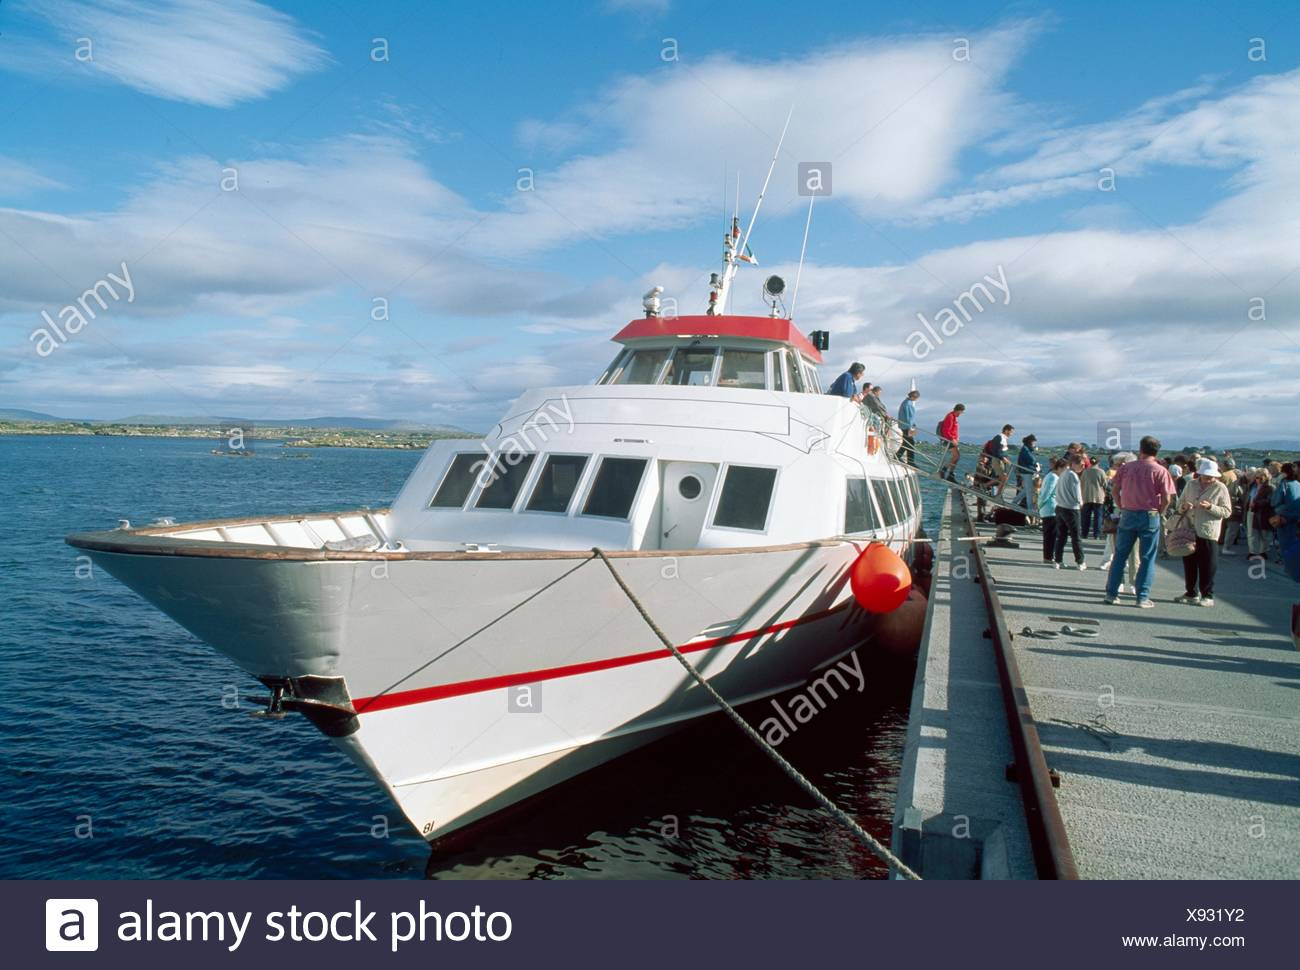 Aran Flyer Ferry, Aran Islands, Co Galway, Ireland; People Next To A Ferry - Stock Image